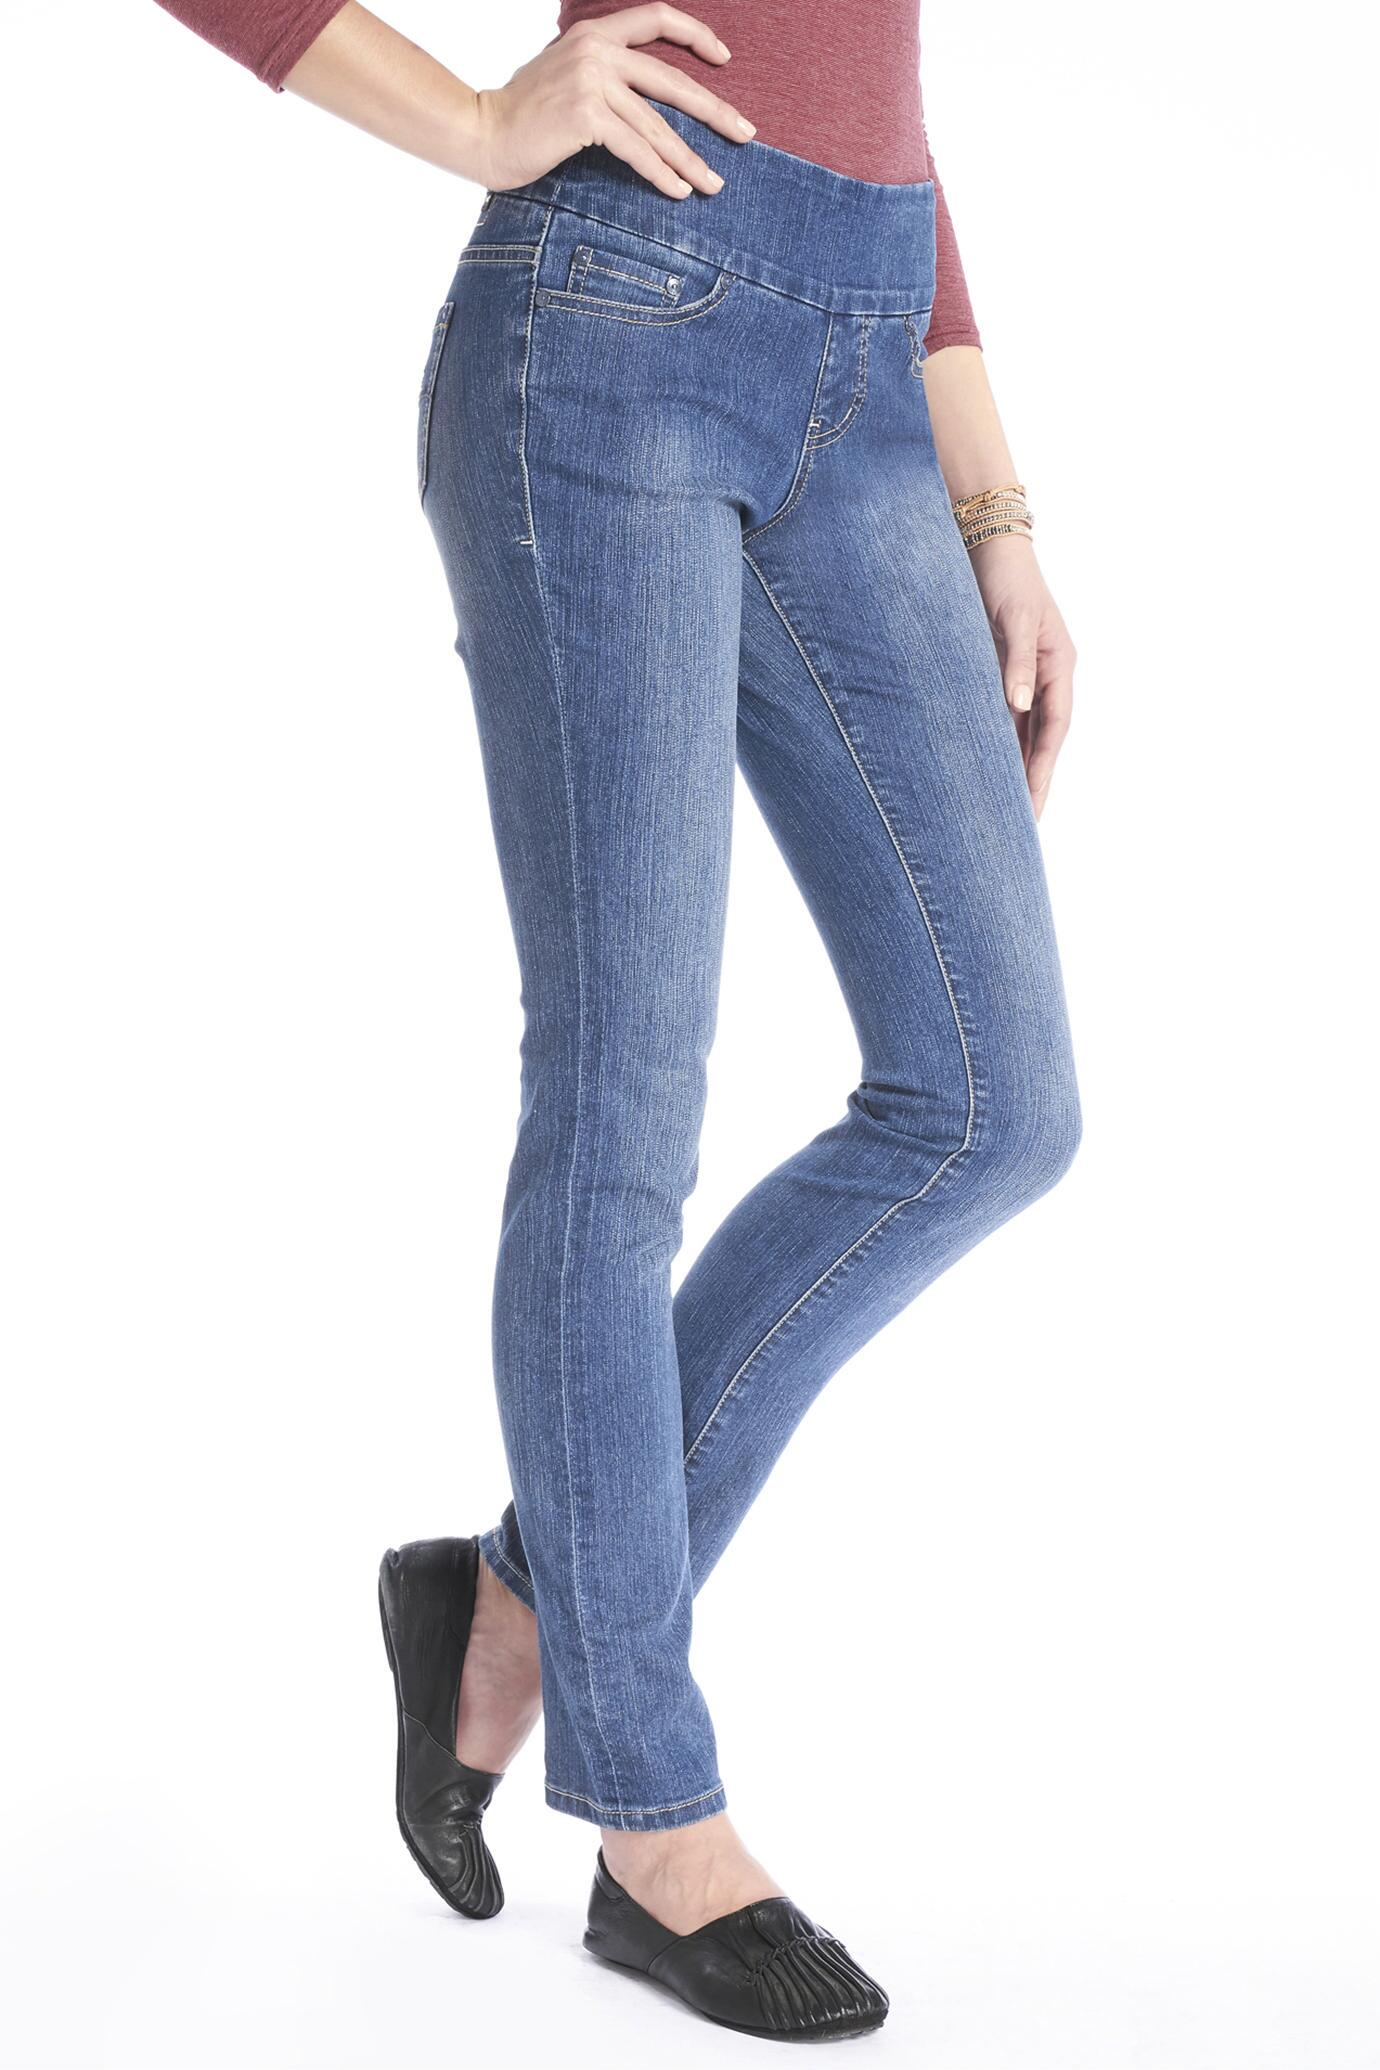 Jag pull-on, tummy tuck jeans